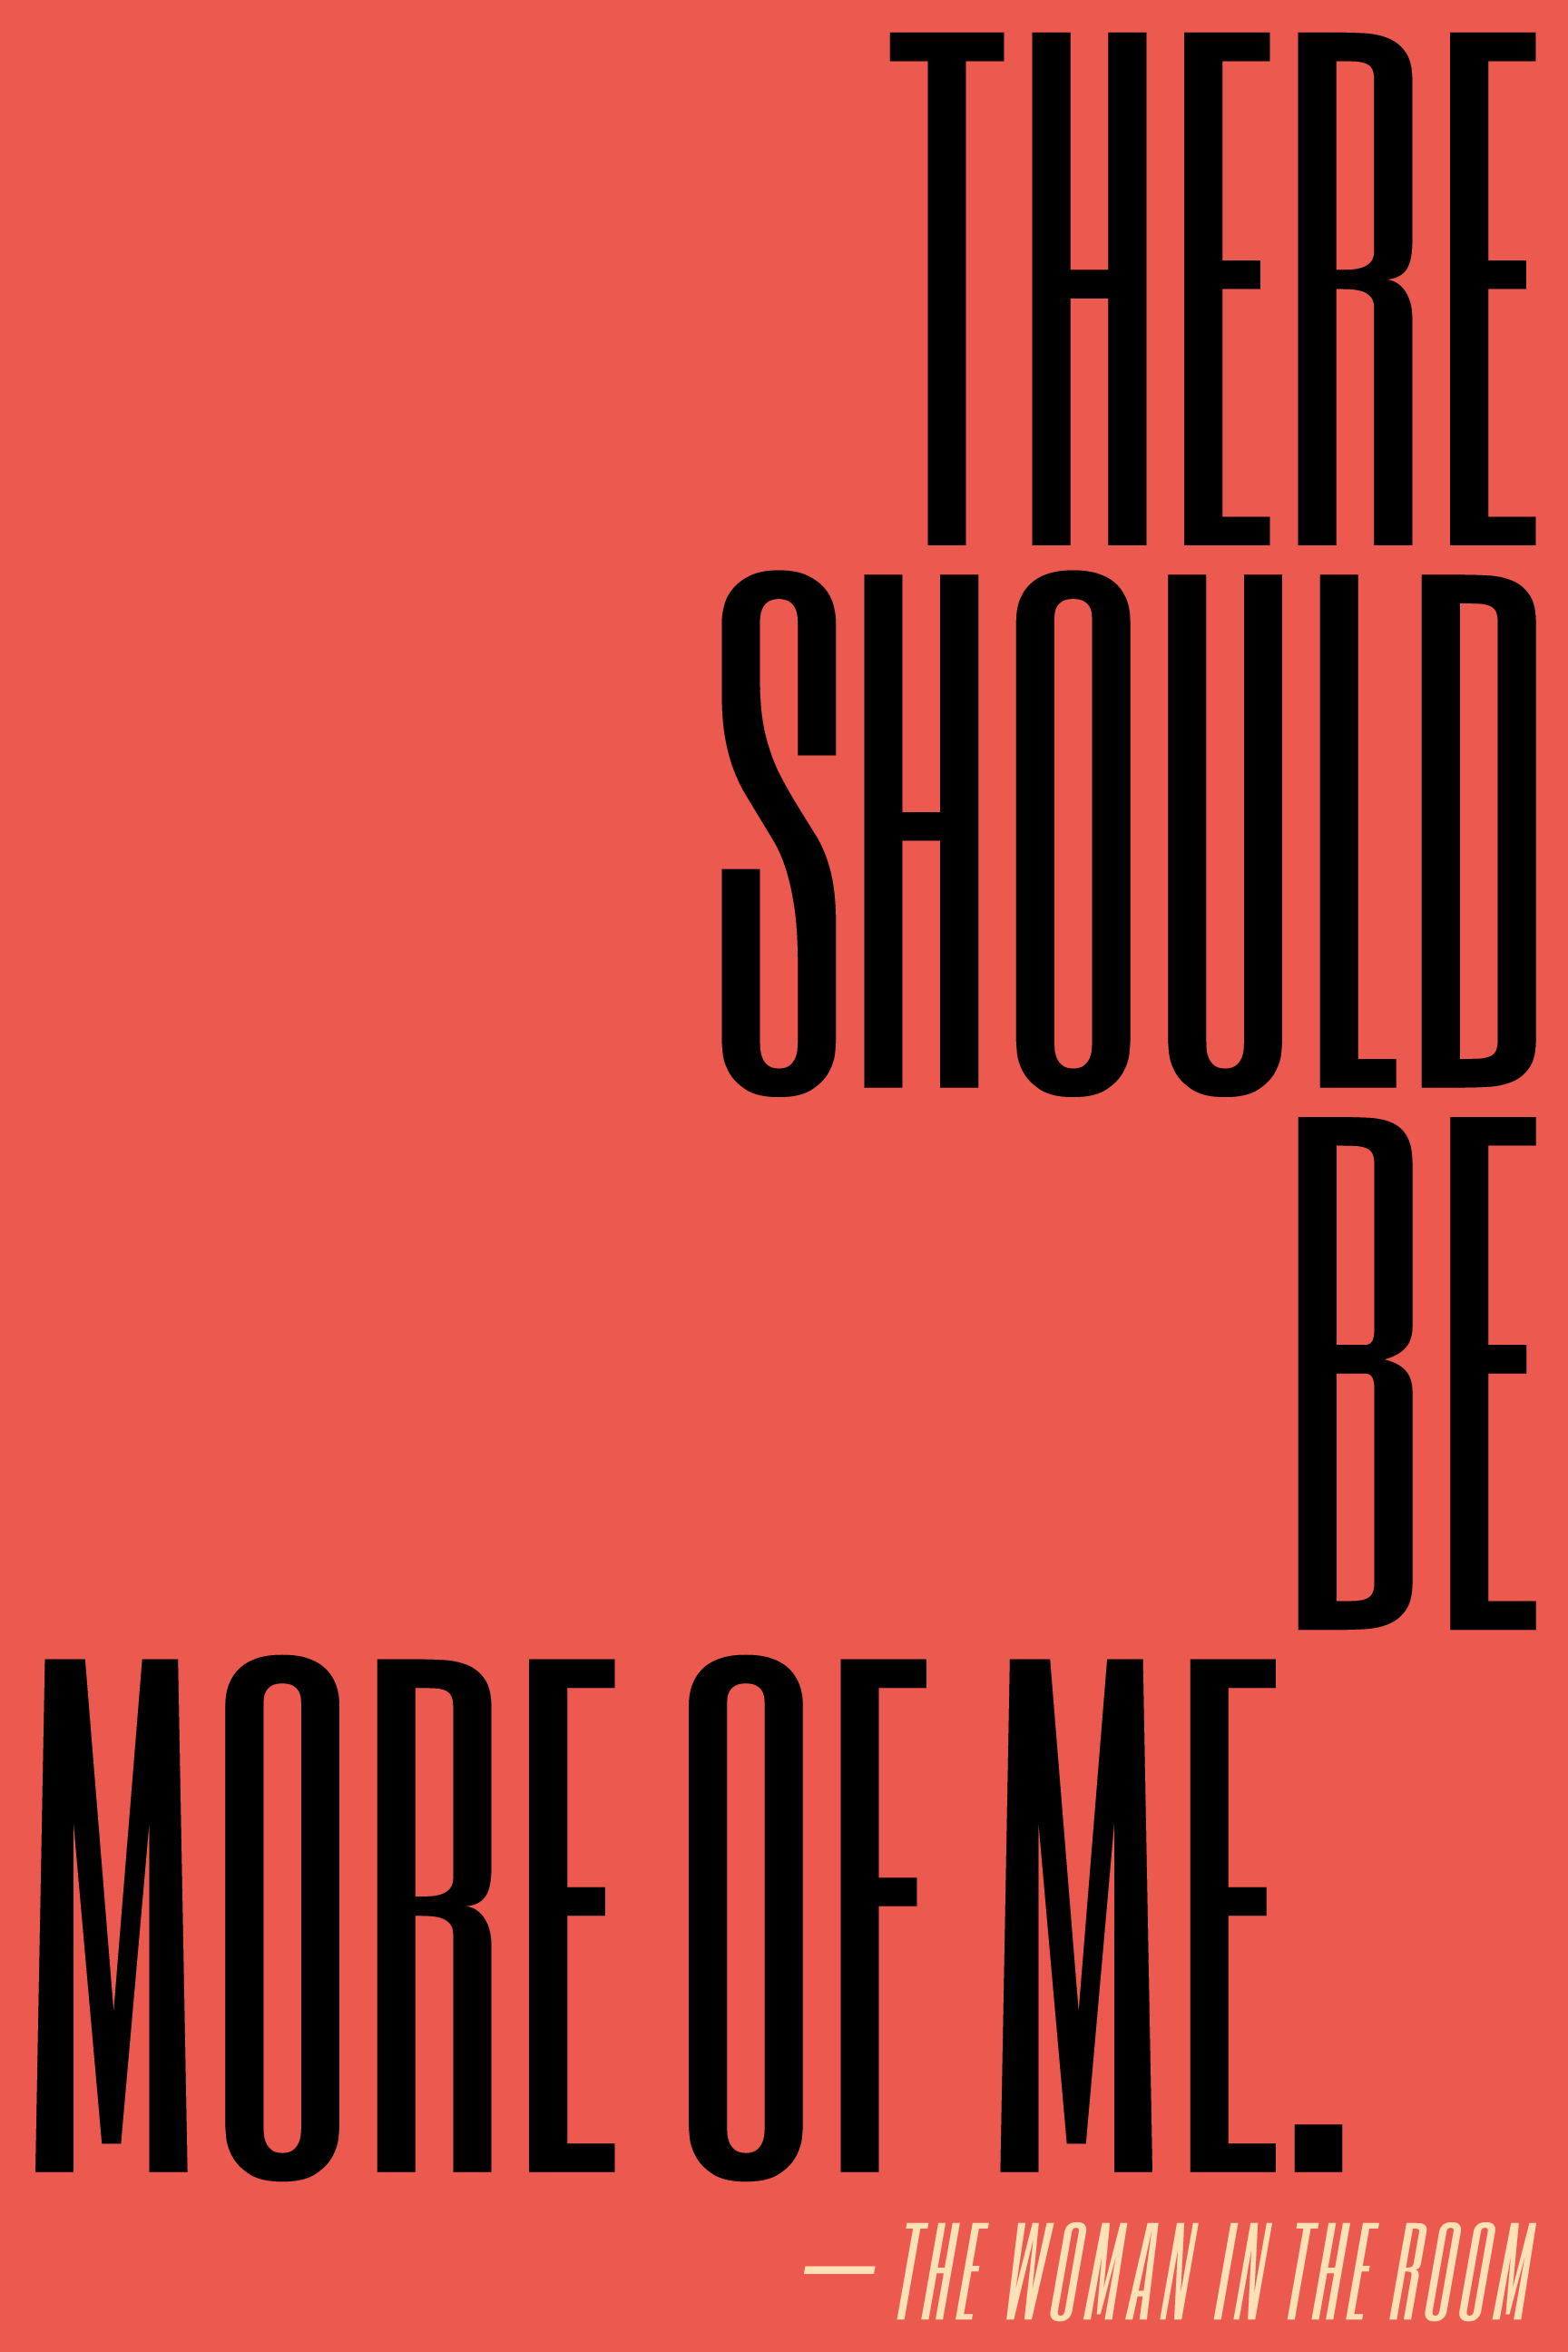 There should be more of me.